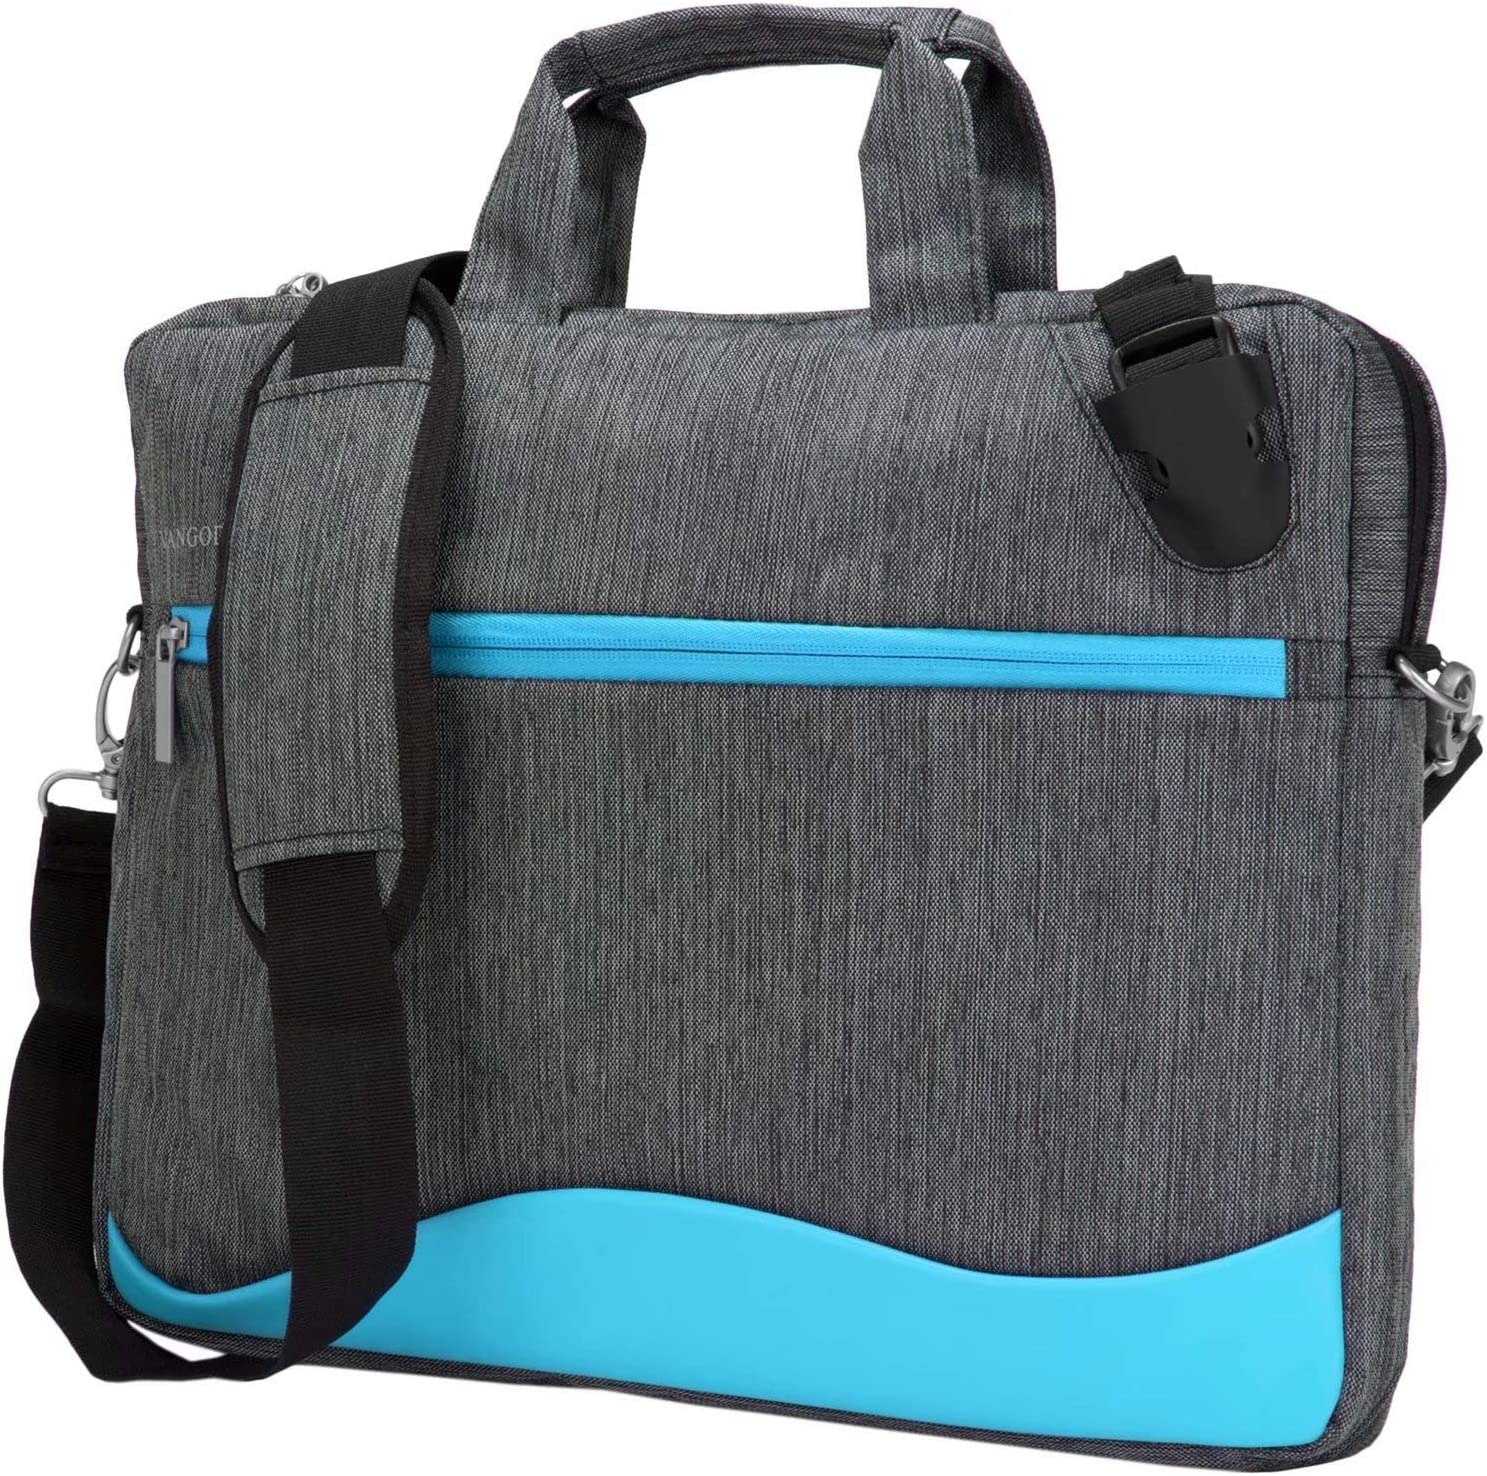 15.6 in Laptop Sling Bag for Dell Inspiron 15 3505 3583 5502 5505 5591 7501 7506